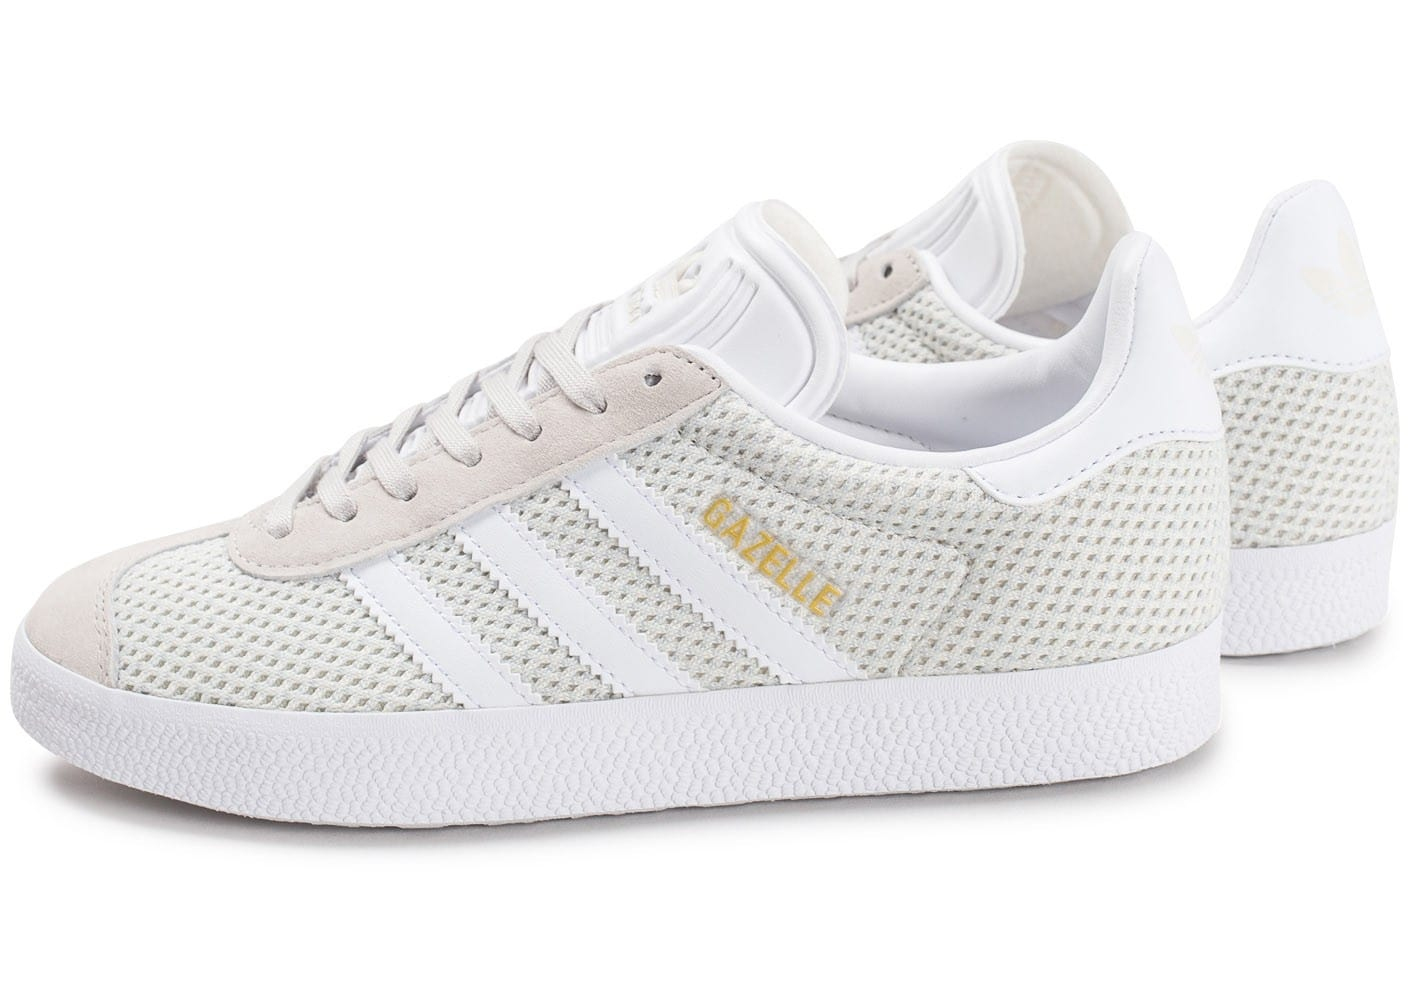 adidas grise claire